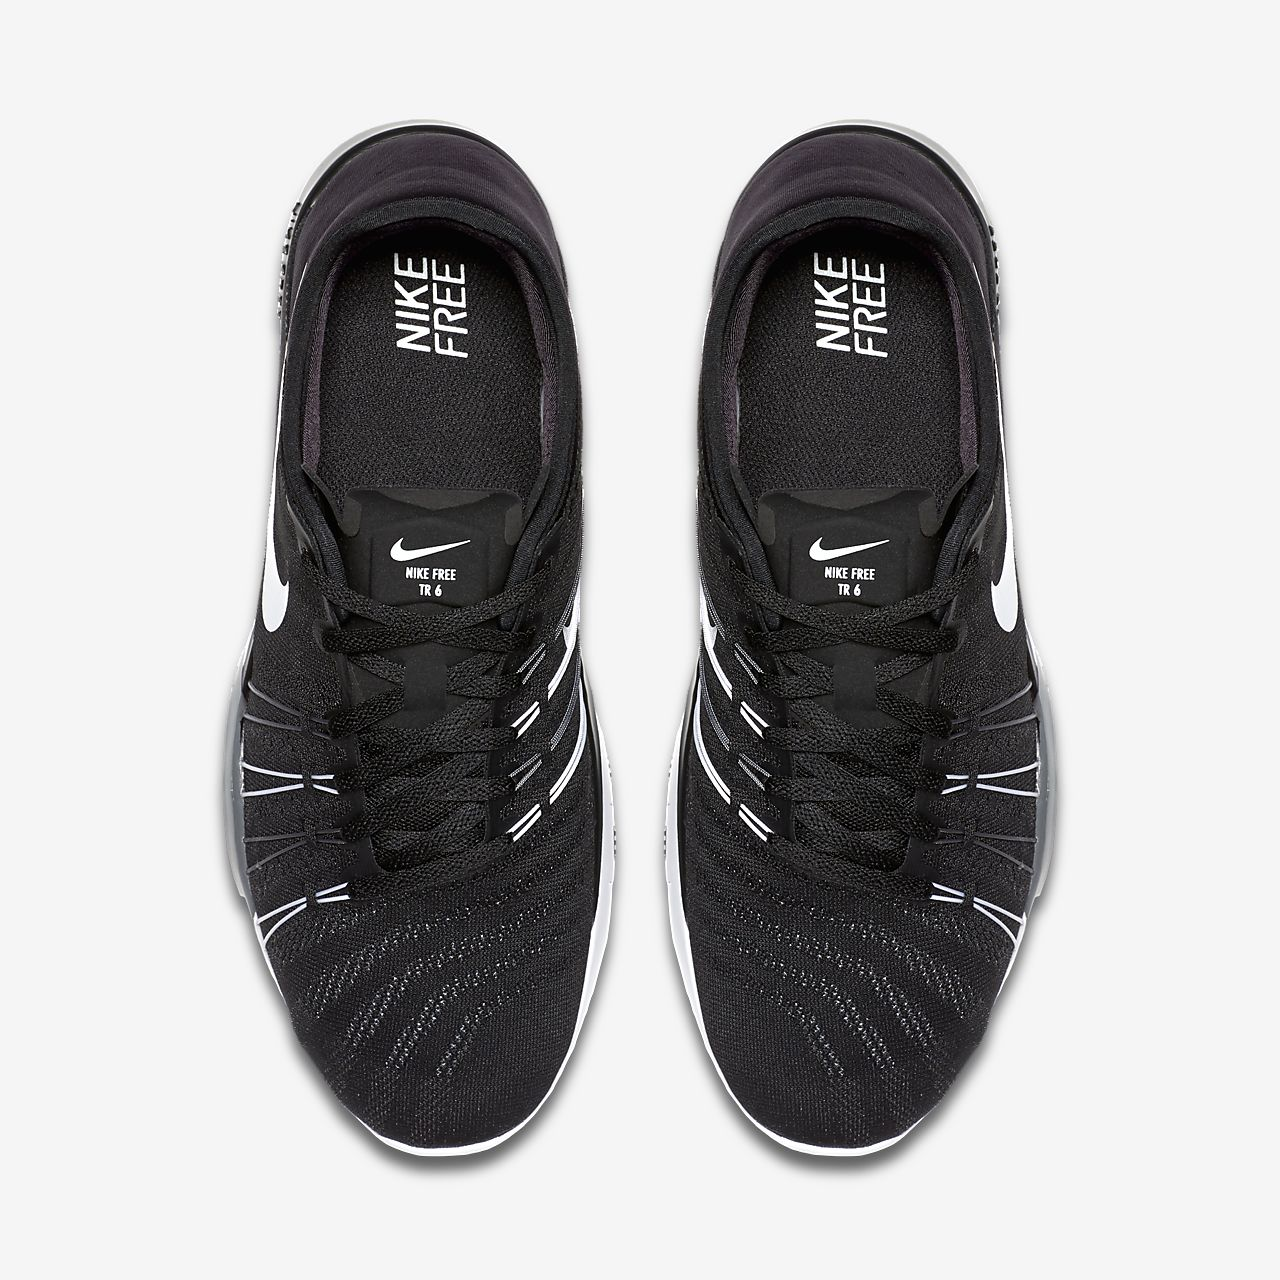 nike free tr 6 men's nz